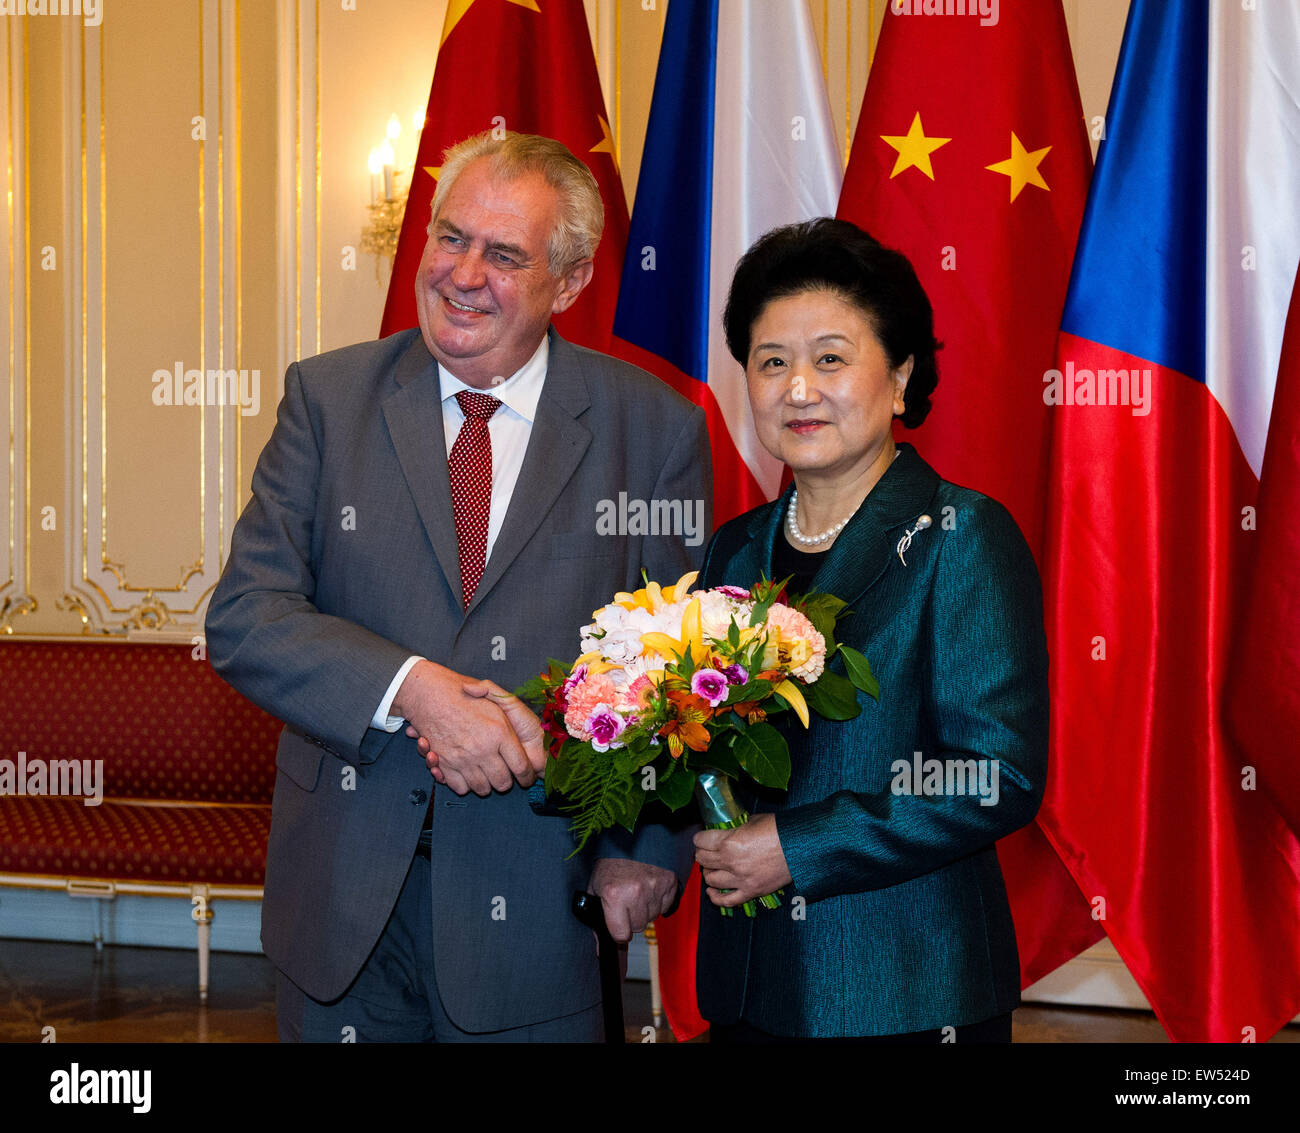 (150618) -- PRAGUE, June 18, 2015 (Xinhua) -- Czech President Milos Zeman (L) meets with visiting Chinese Vice Premier - Stock Image